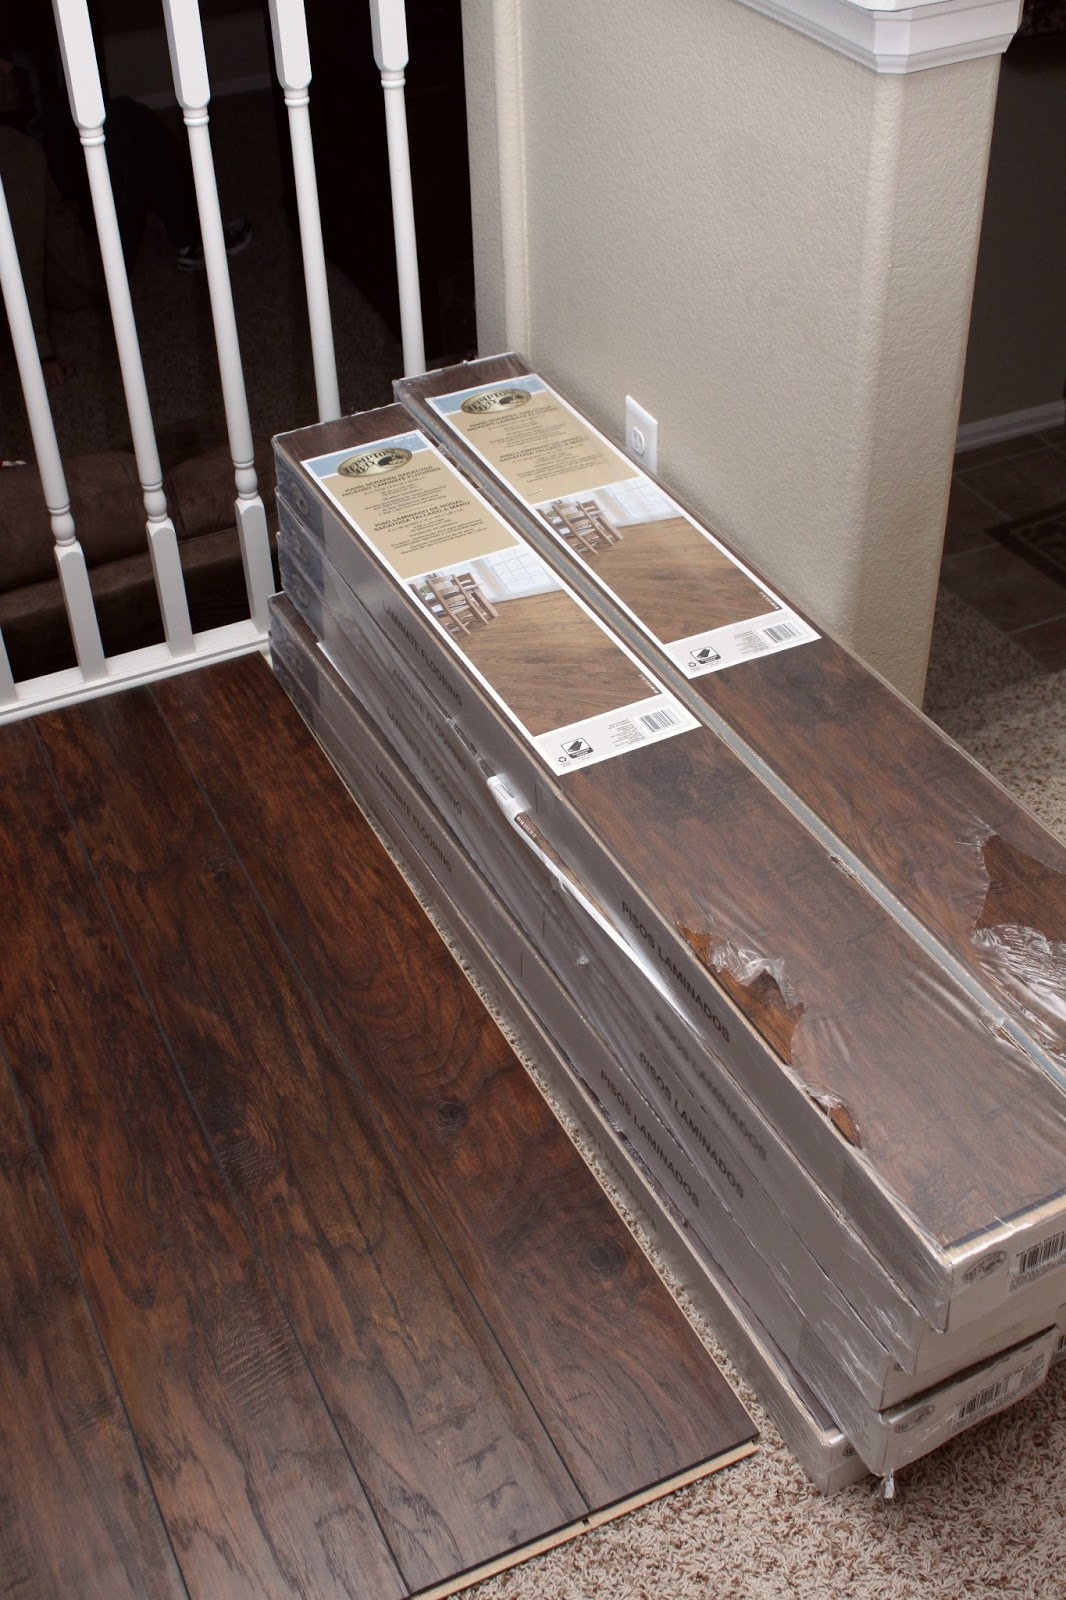 Laminate Tile Flooring : Our modern homestead diy laminate wood flooring project